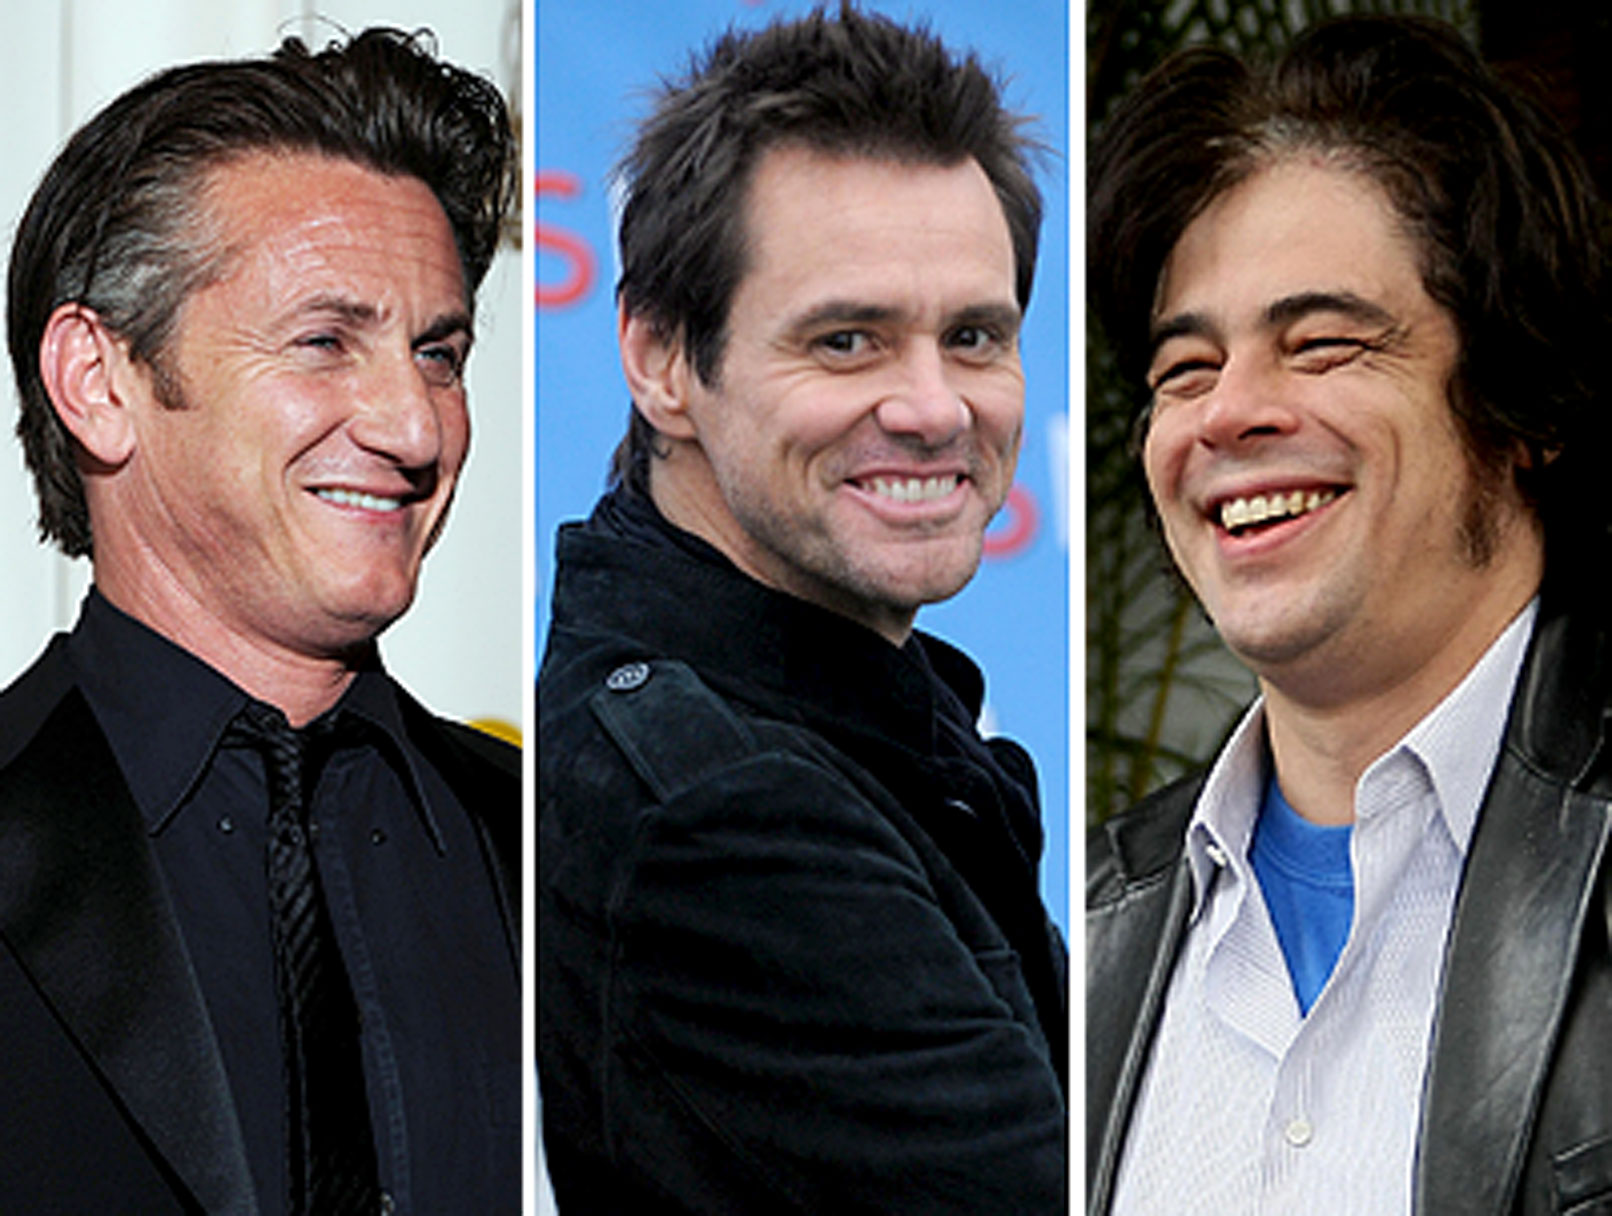 Penn, Carrey and Del Toro to Star in Three Stooges Movie?